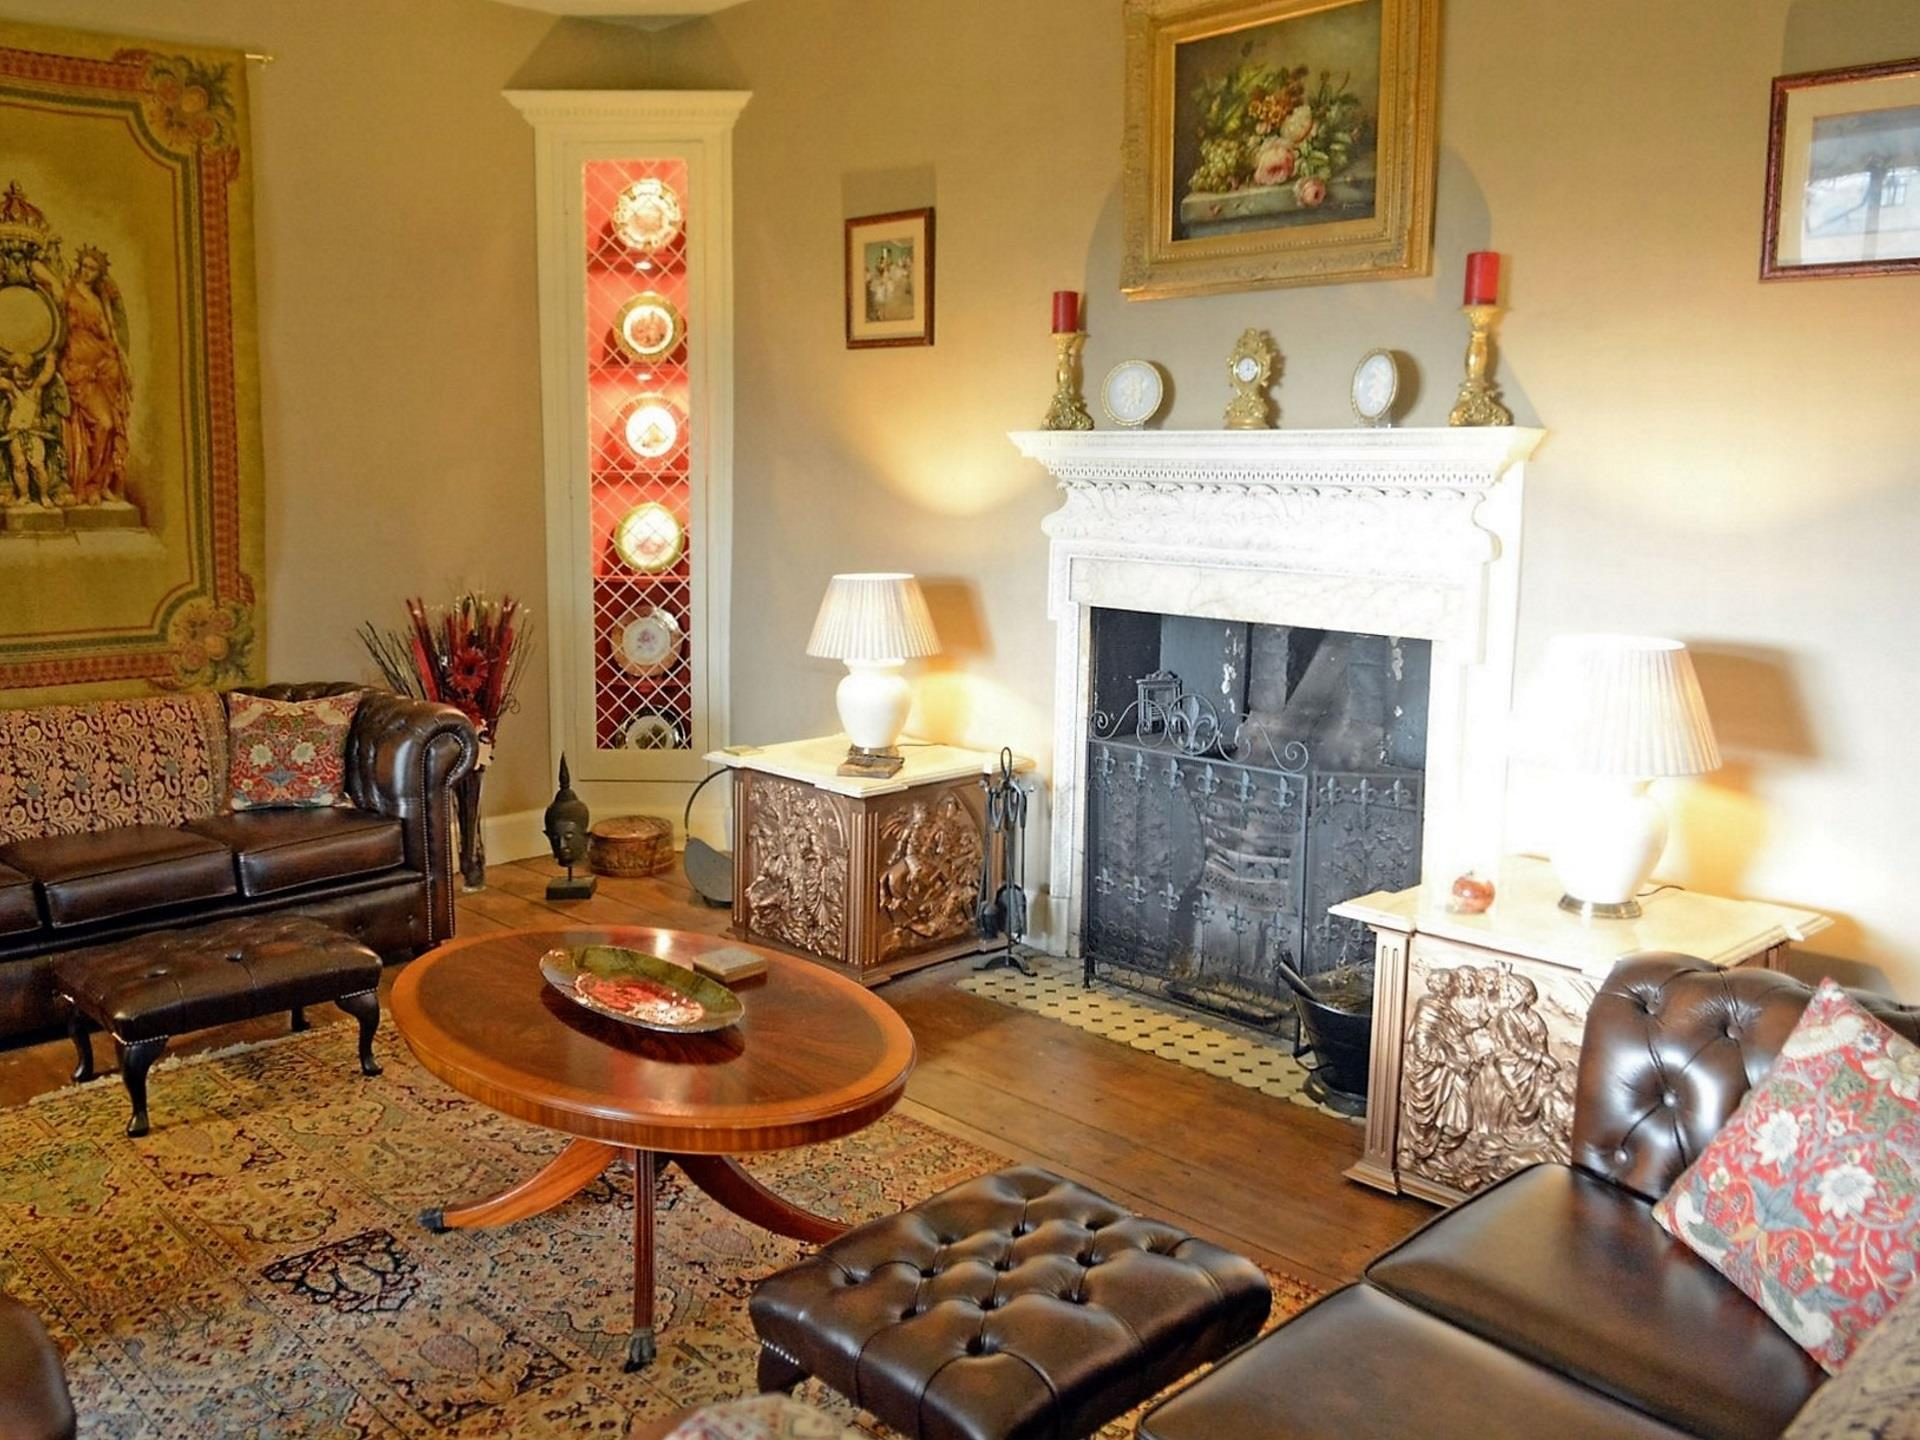 Plas Tan-Yr-Allt Historic Country House